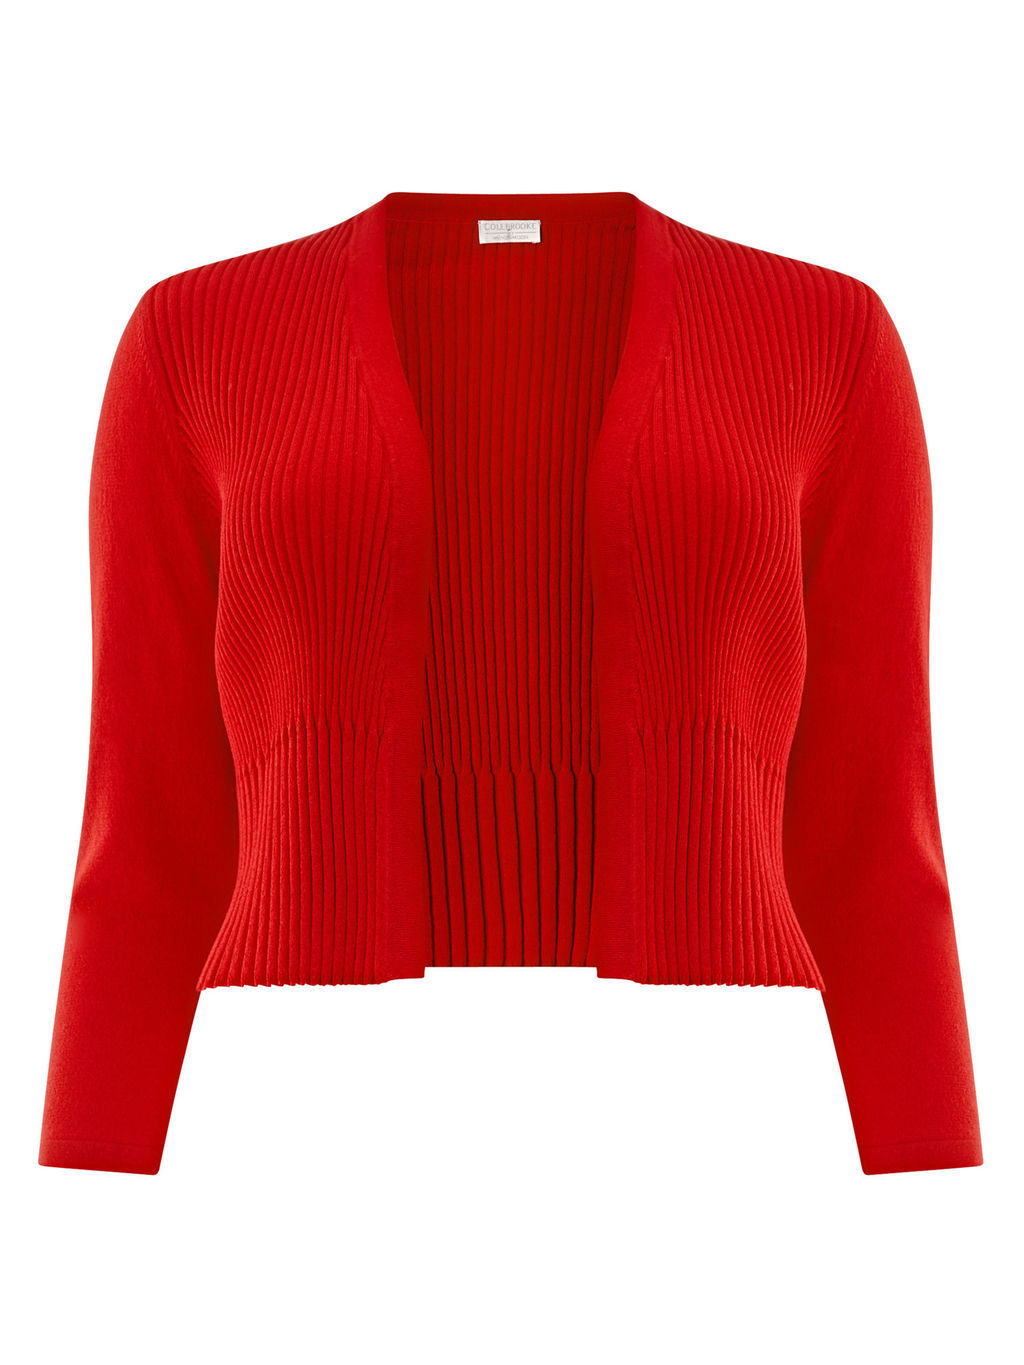 Pleated Shrug - pattern: plain; style: bolero/shrug; length: cropped; neckline: collarless open; predominant colour: true red; occasions: casual, creative work; fit: standard fit; sleeve length: 3/4 length; sleeve style: standard; texture group: knits/crochet; pattern type: knitted - fine stitch; fibres: viscose/rayon - mix; season: s/s 2016